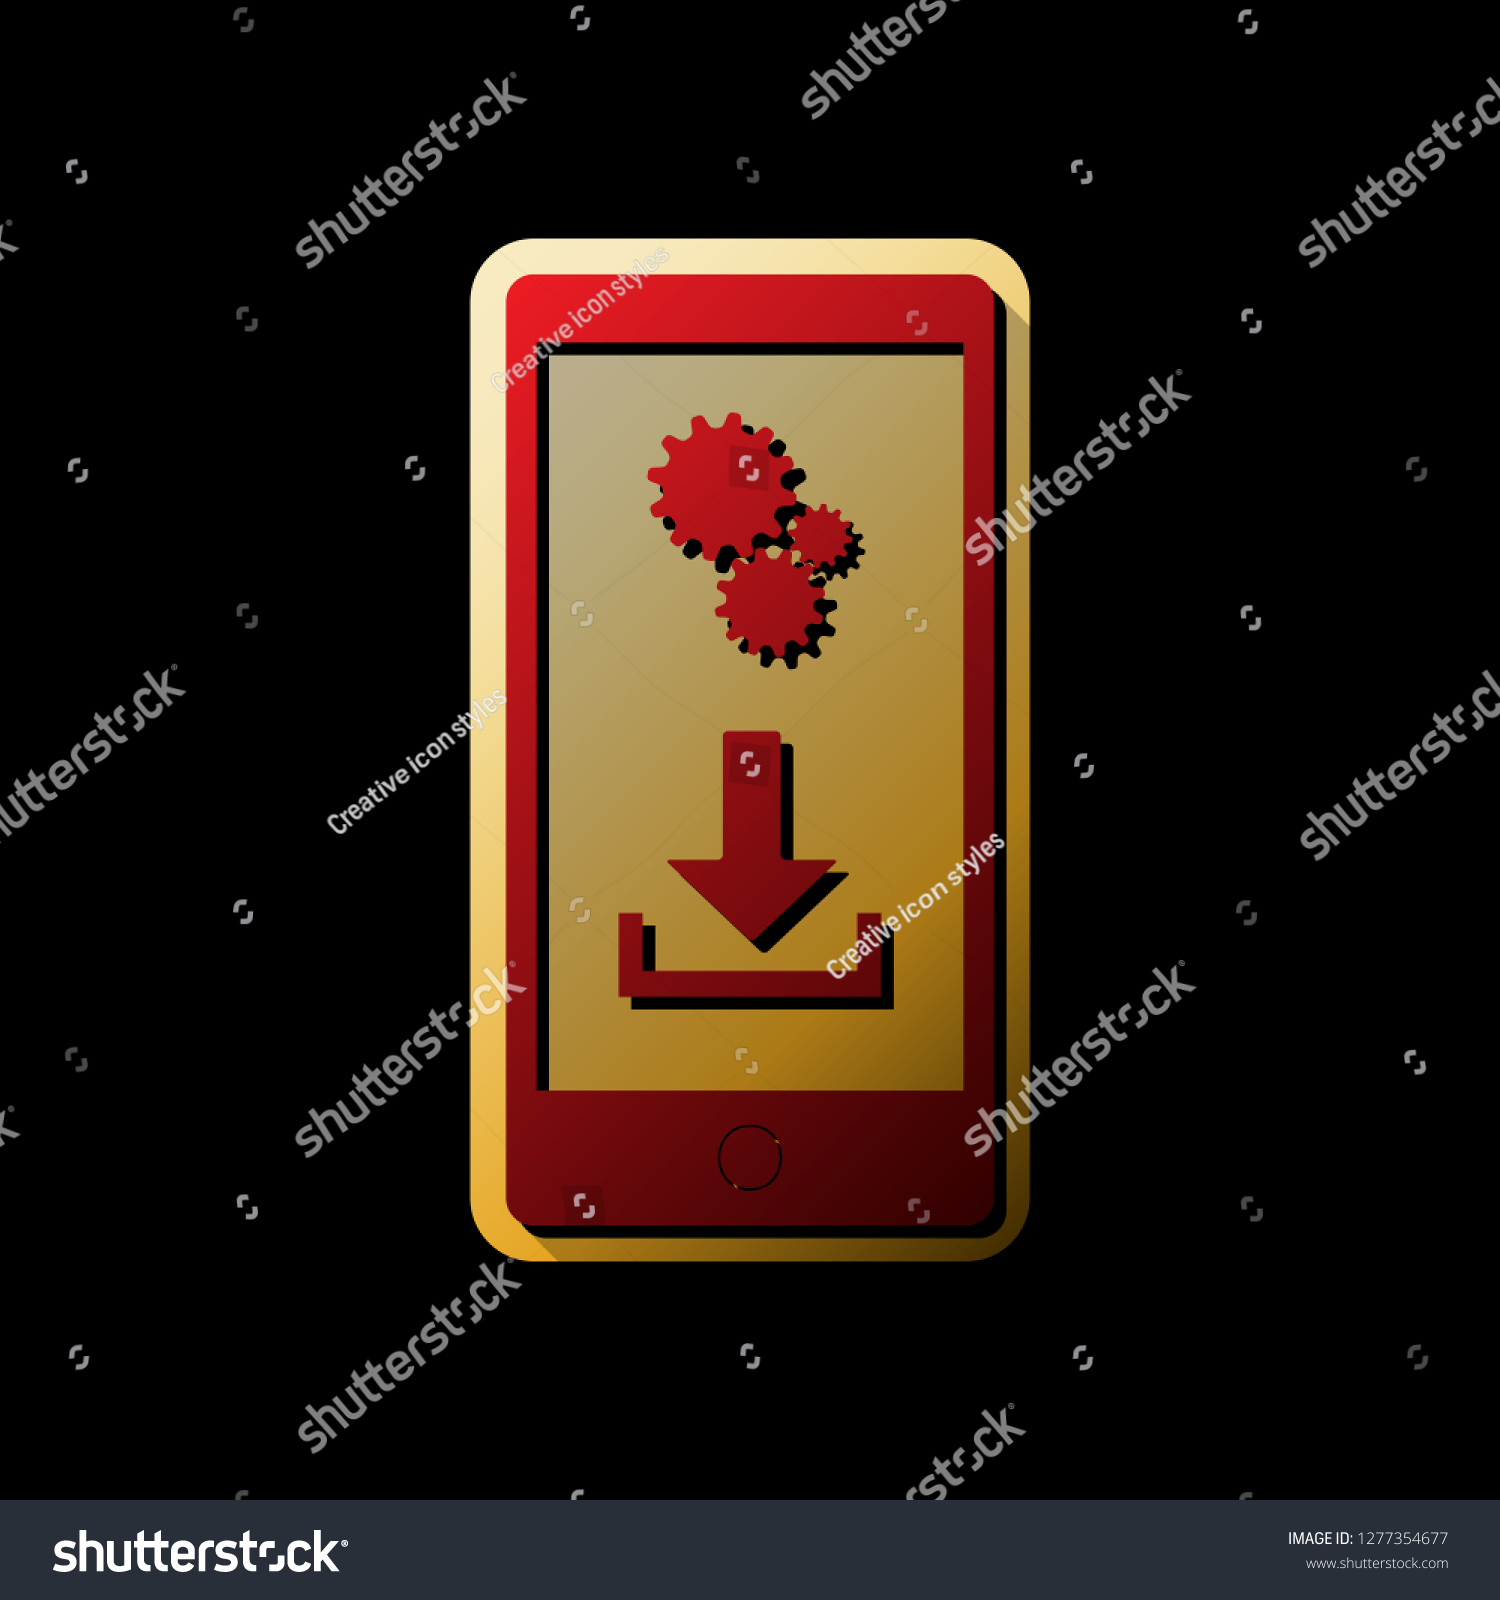 Phone Settings Download Install Apps Vector Stock Vector